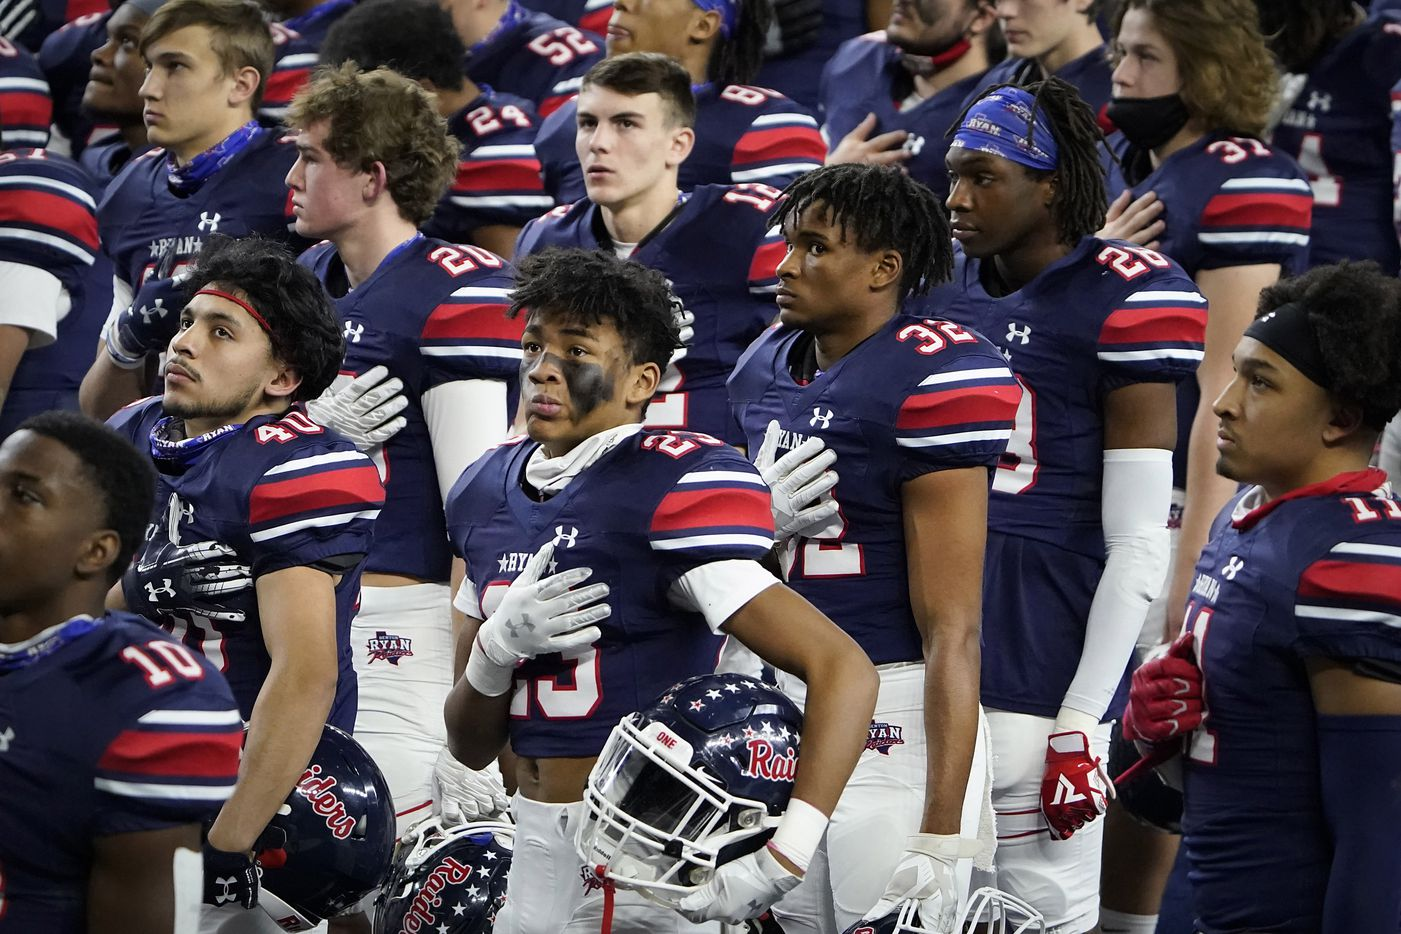 Denton Ryan players, including defensive back James Lundy (23), stand for the national anthem before facing Cedar Park in the Class 5A Division I state football championship game at AT&T Stadium on Friday, Jan. 15, 2021, in Arlington, Texas. (Smiley N. Pool/The Dallas Morning News)